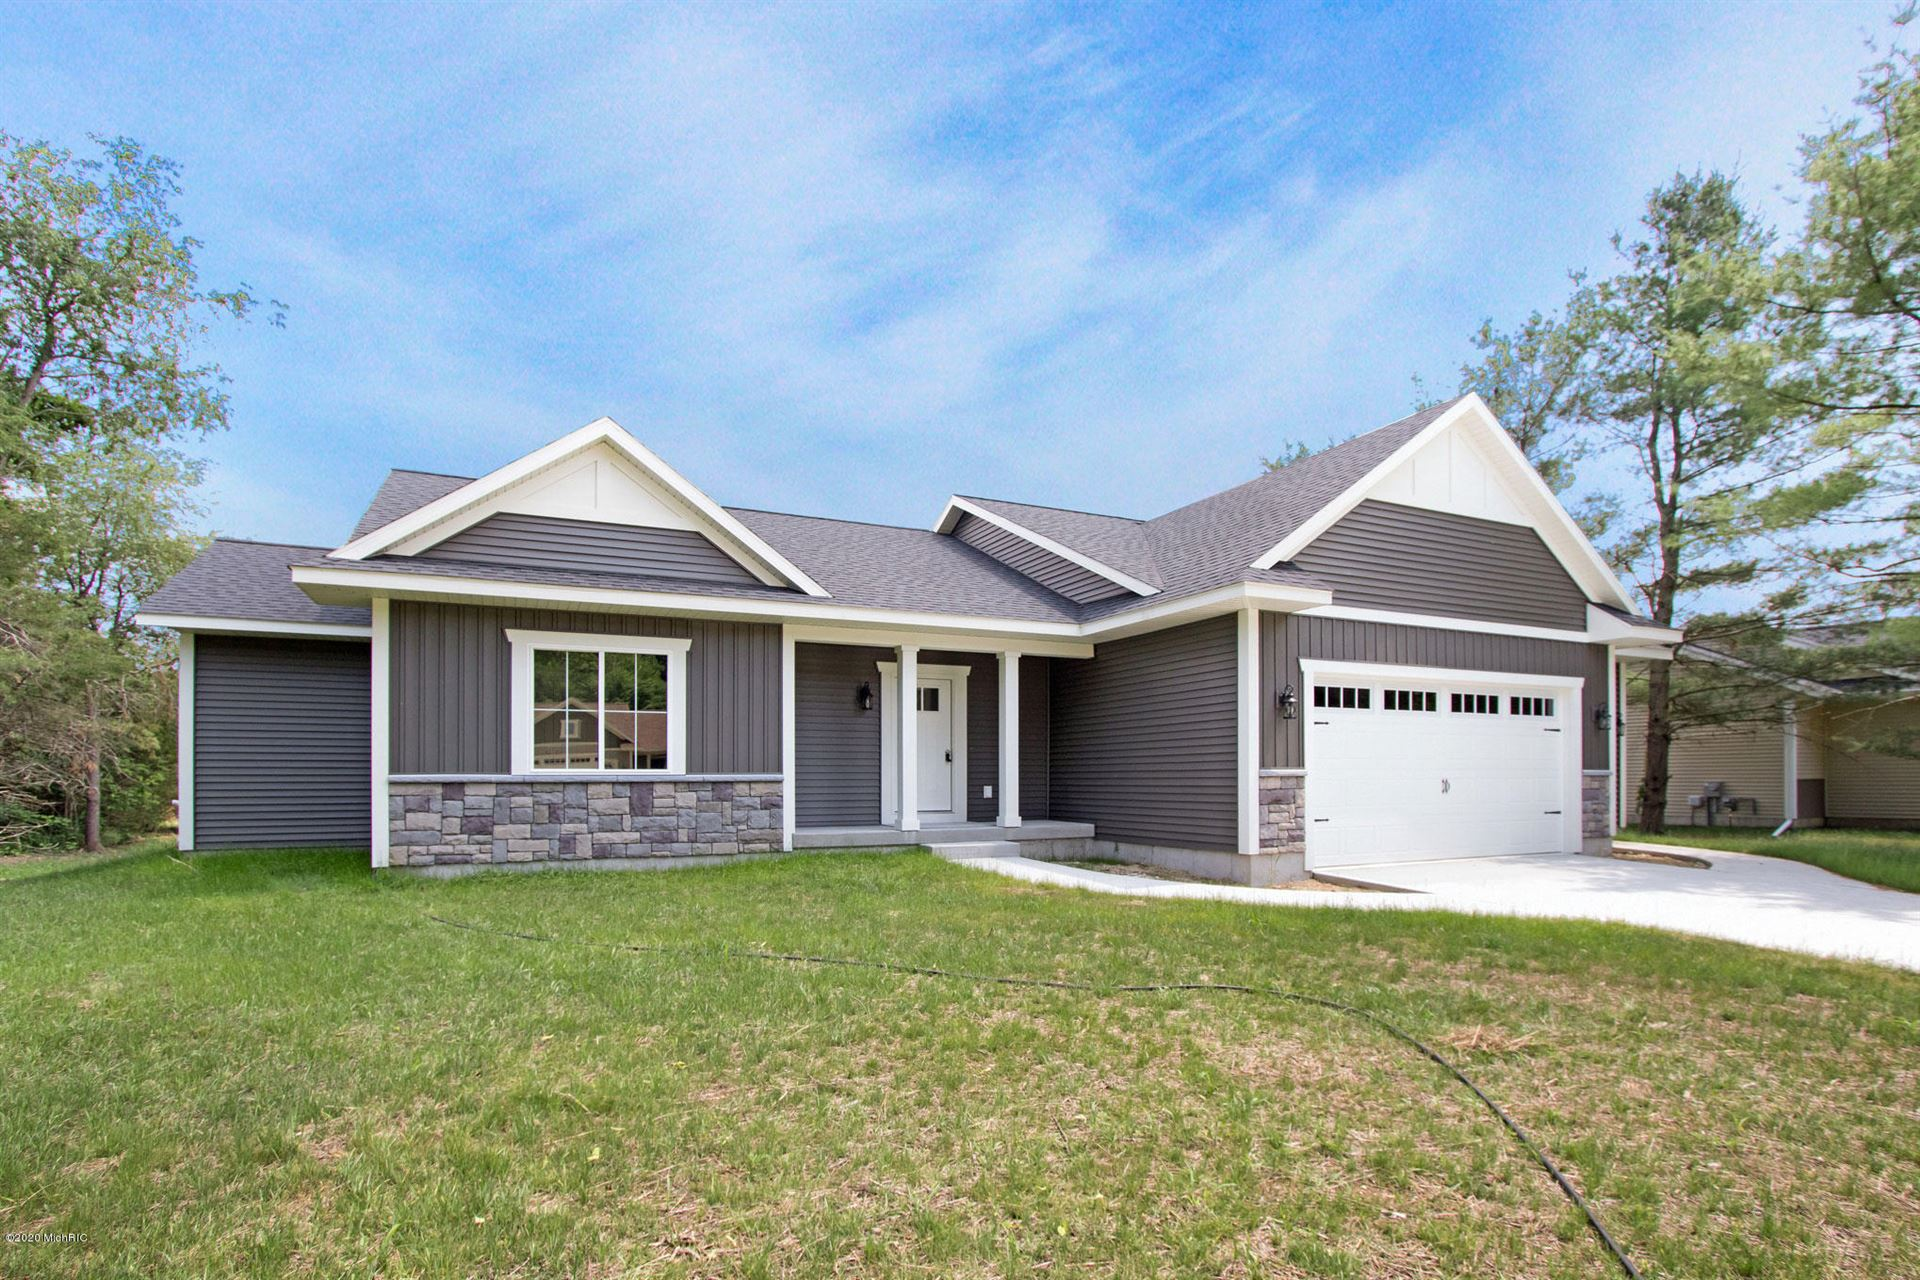 Photo of 13252 Forest River Drive SE, Lowell, MI 49331 (MLS # 20024317)